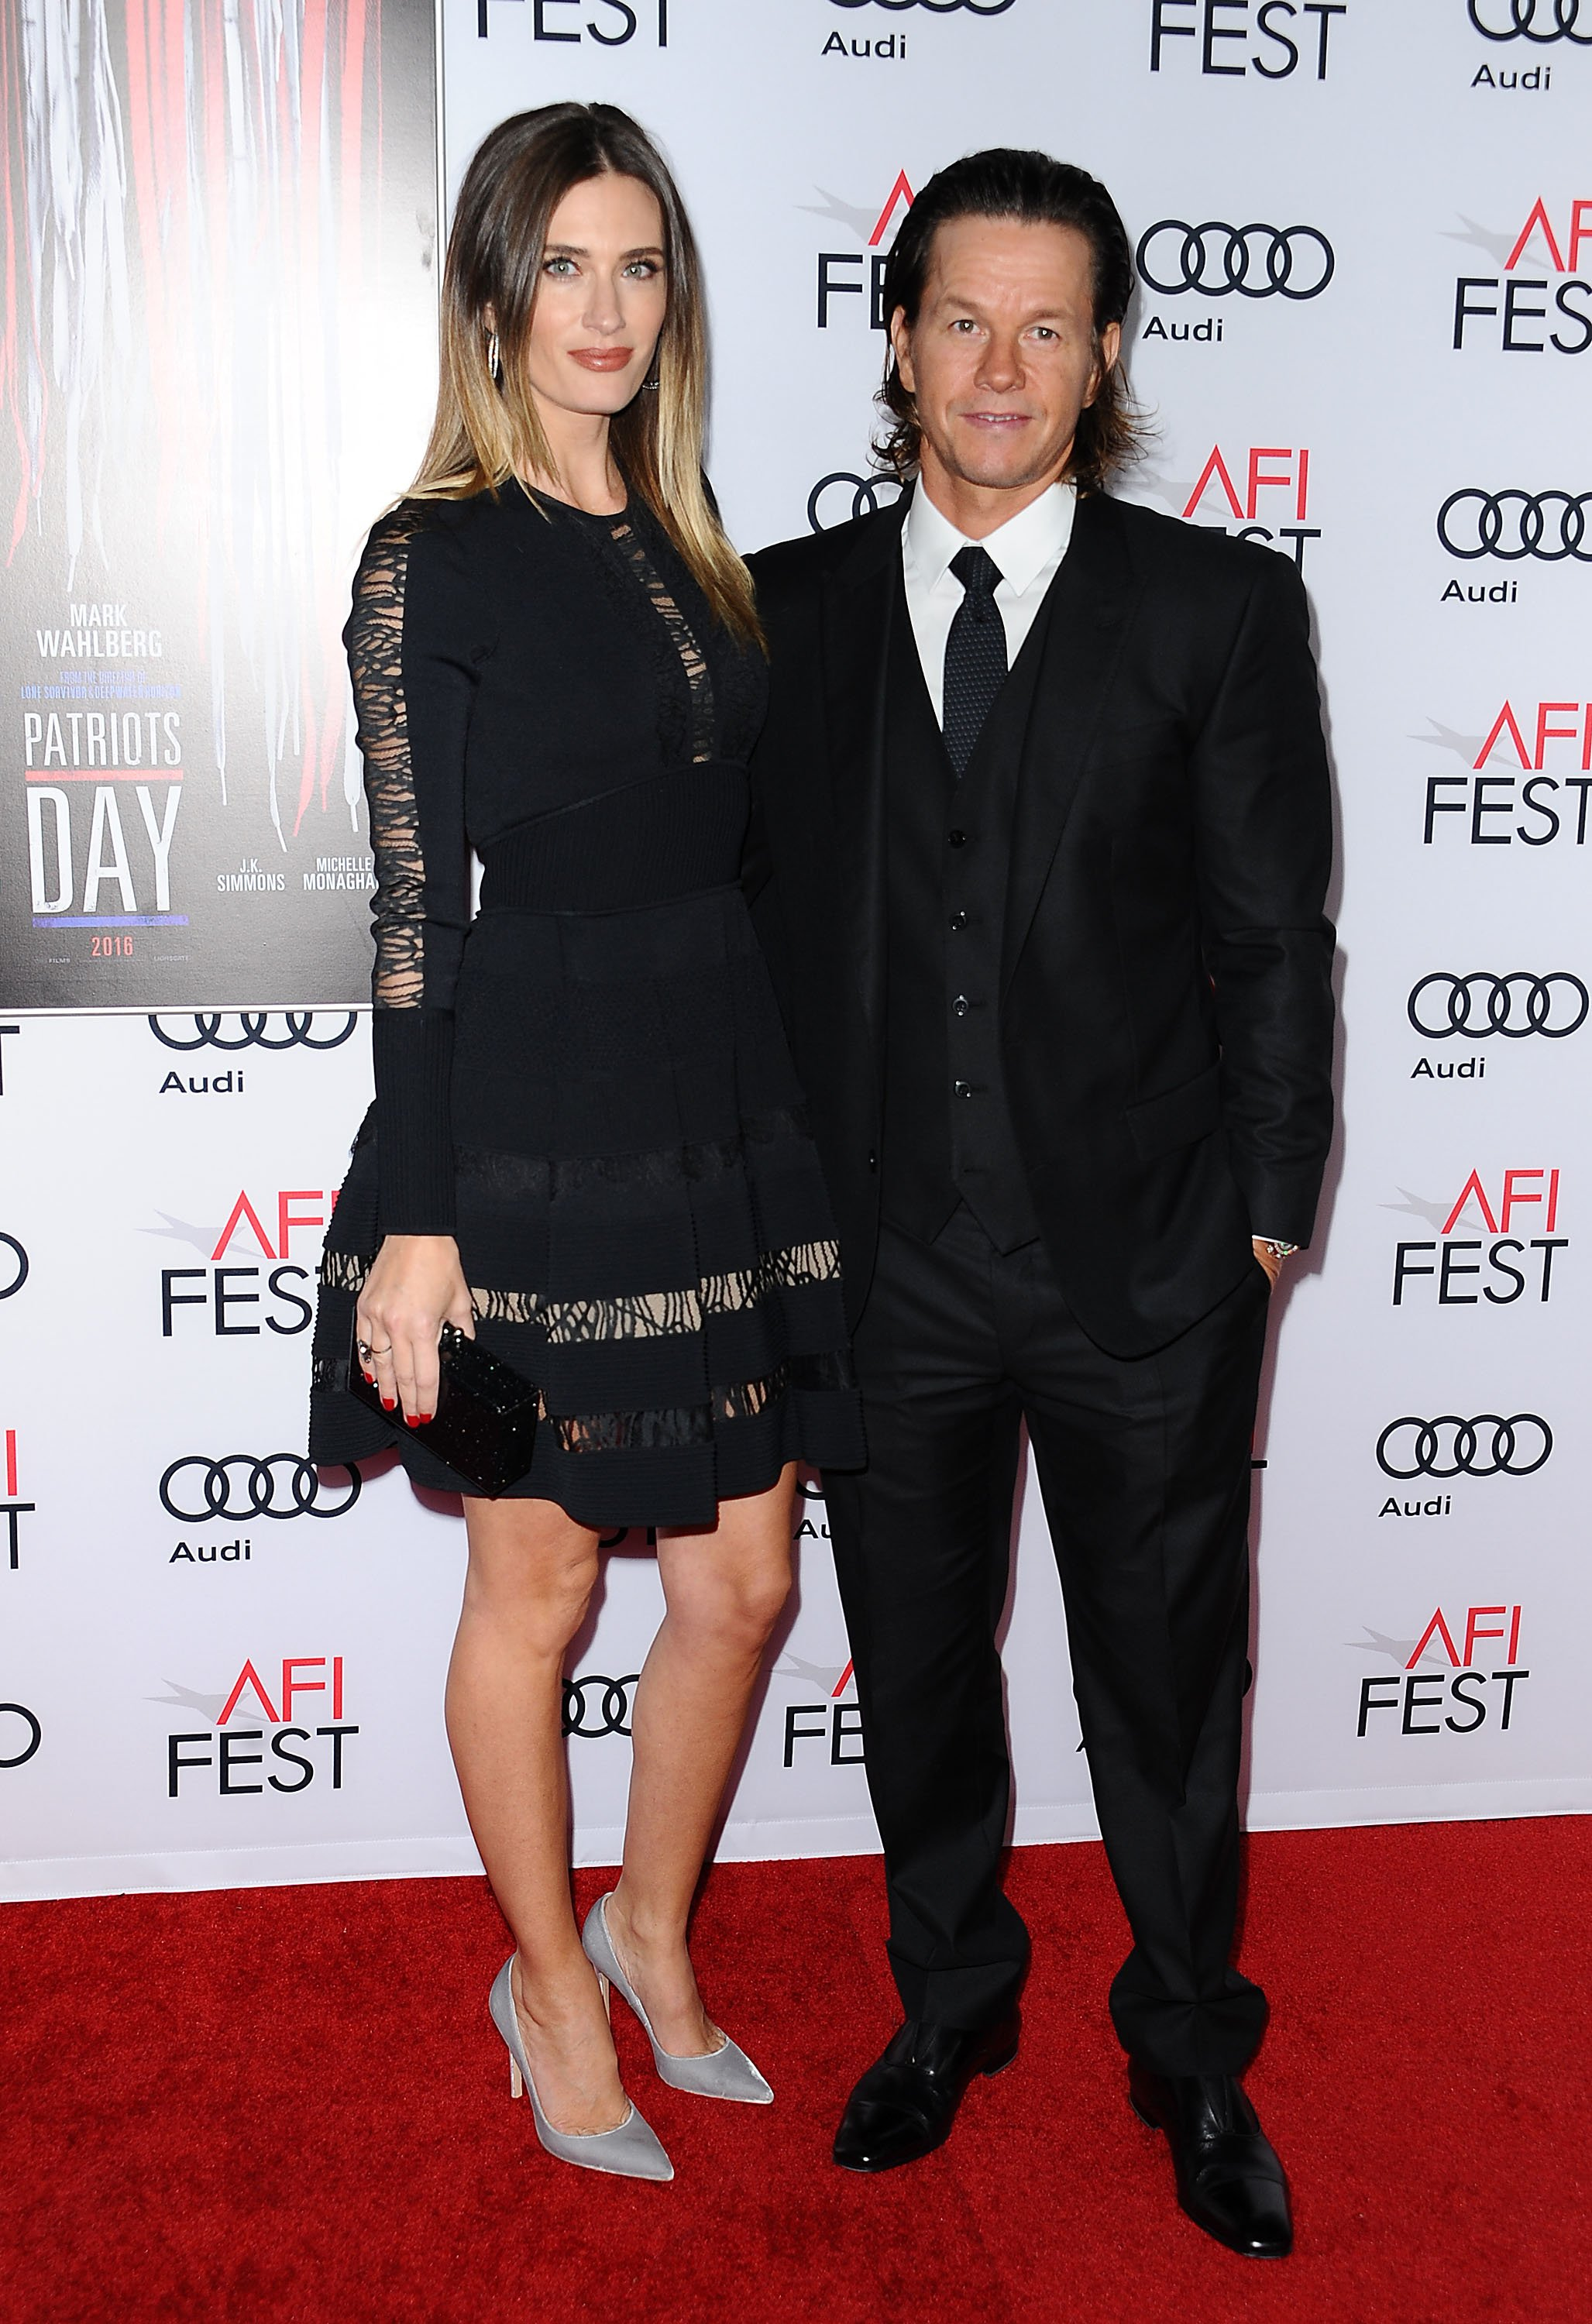 """Mark Wahlberg and wife Rhea Durham attend the closing night gala screening of """"Patriots Day"""" at the 2016 AFI Fest at TCL Chinese Theatre on November 17, 2016 in Hollywood, California.   Source: Getty Images"""